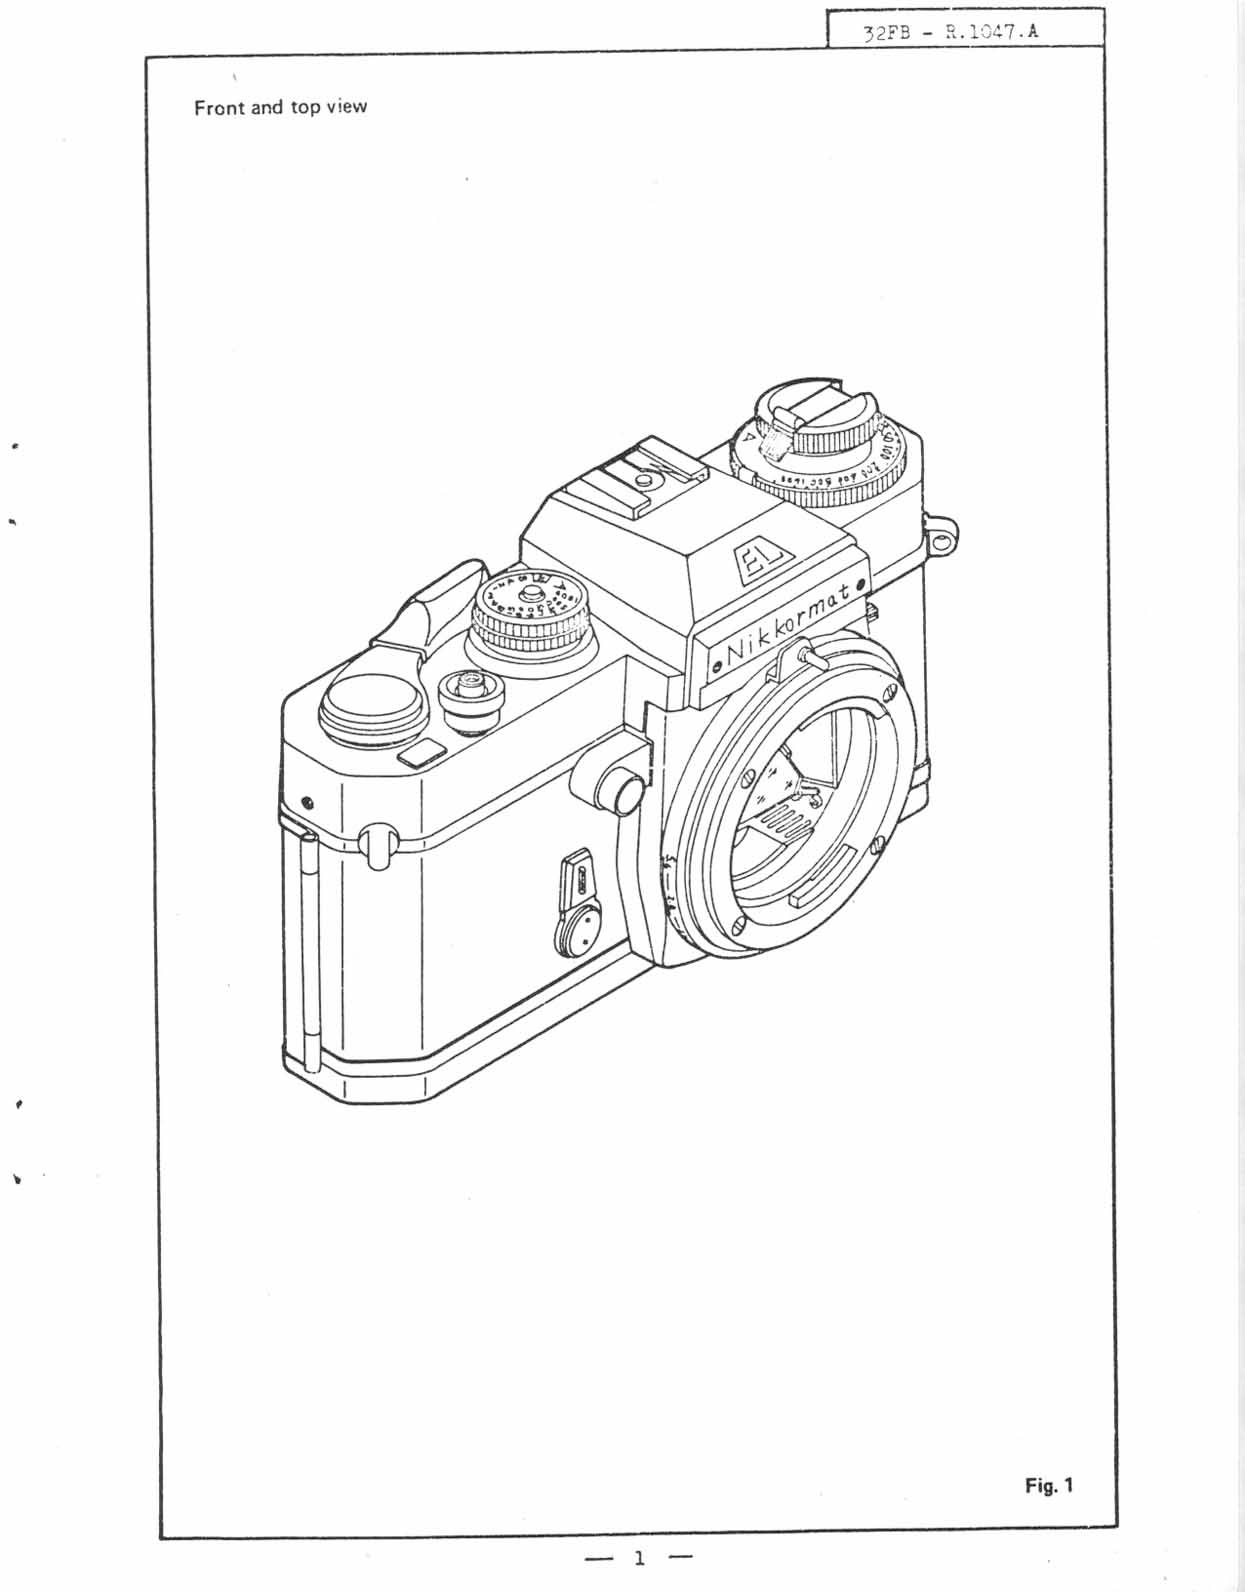 Nikon Nikkormat EL Repair Manual